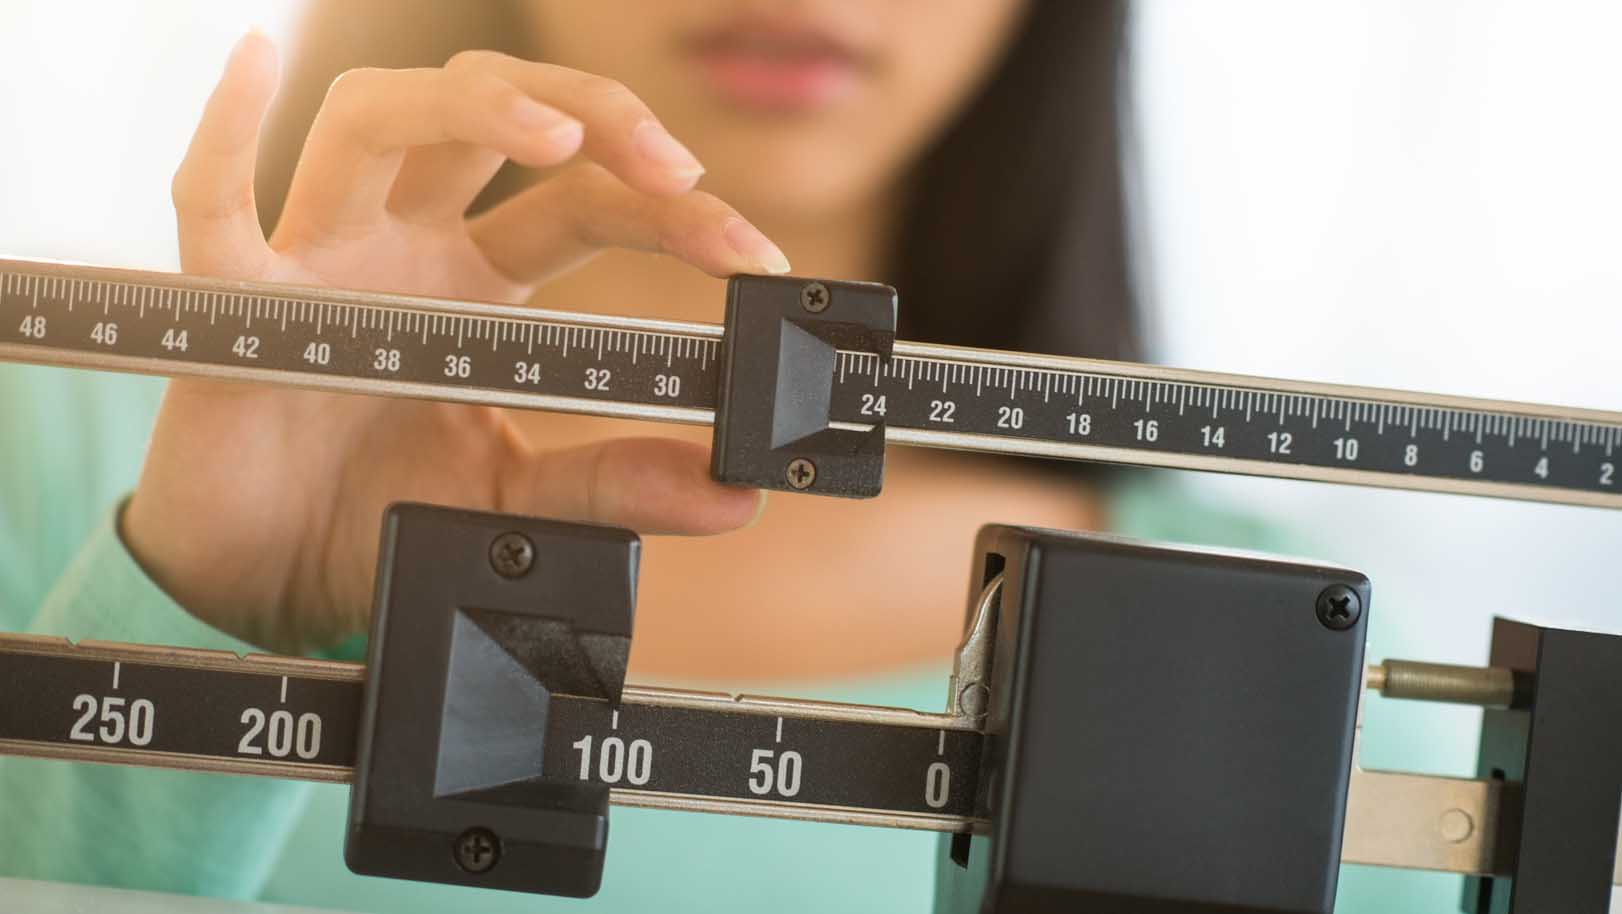 For many people, especially the 70 percent of Americans who are overweight or obese, maintaining weight loss is a losing battle.